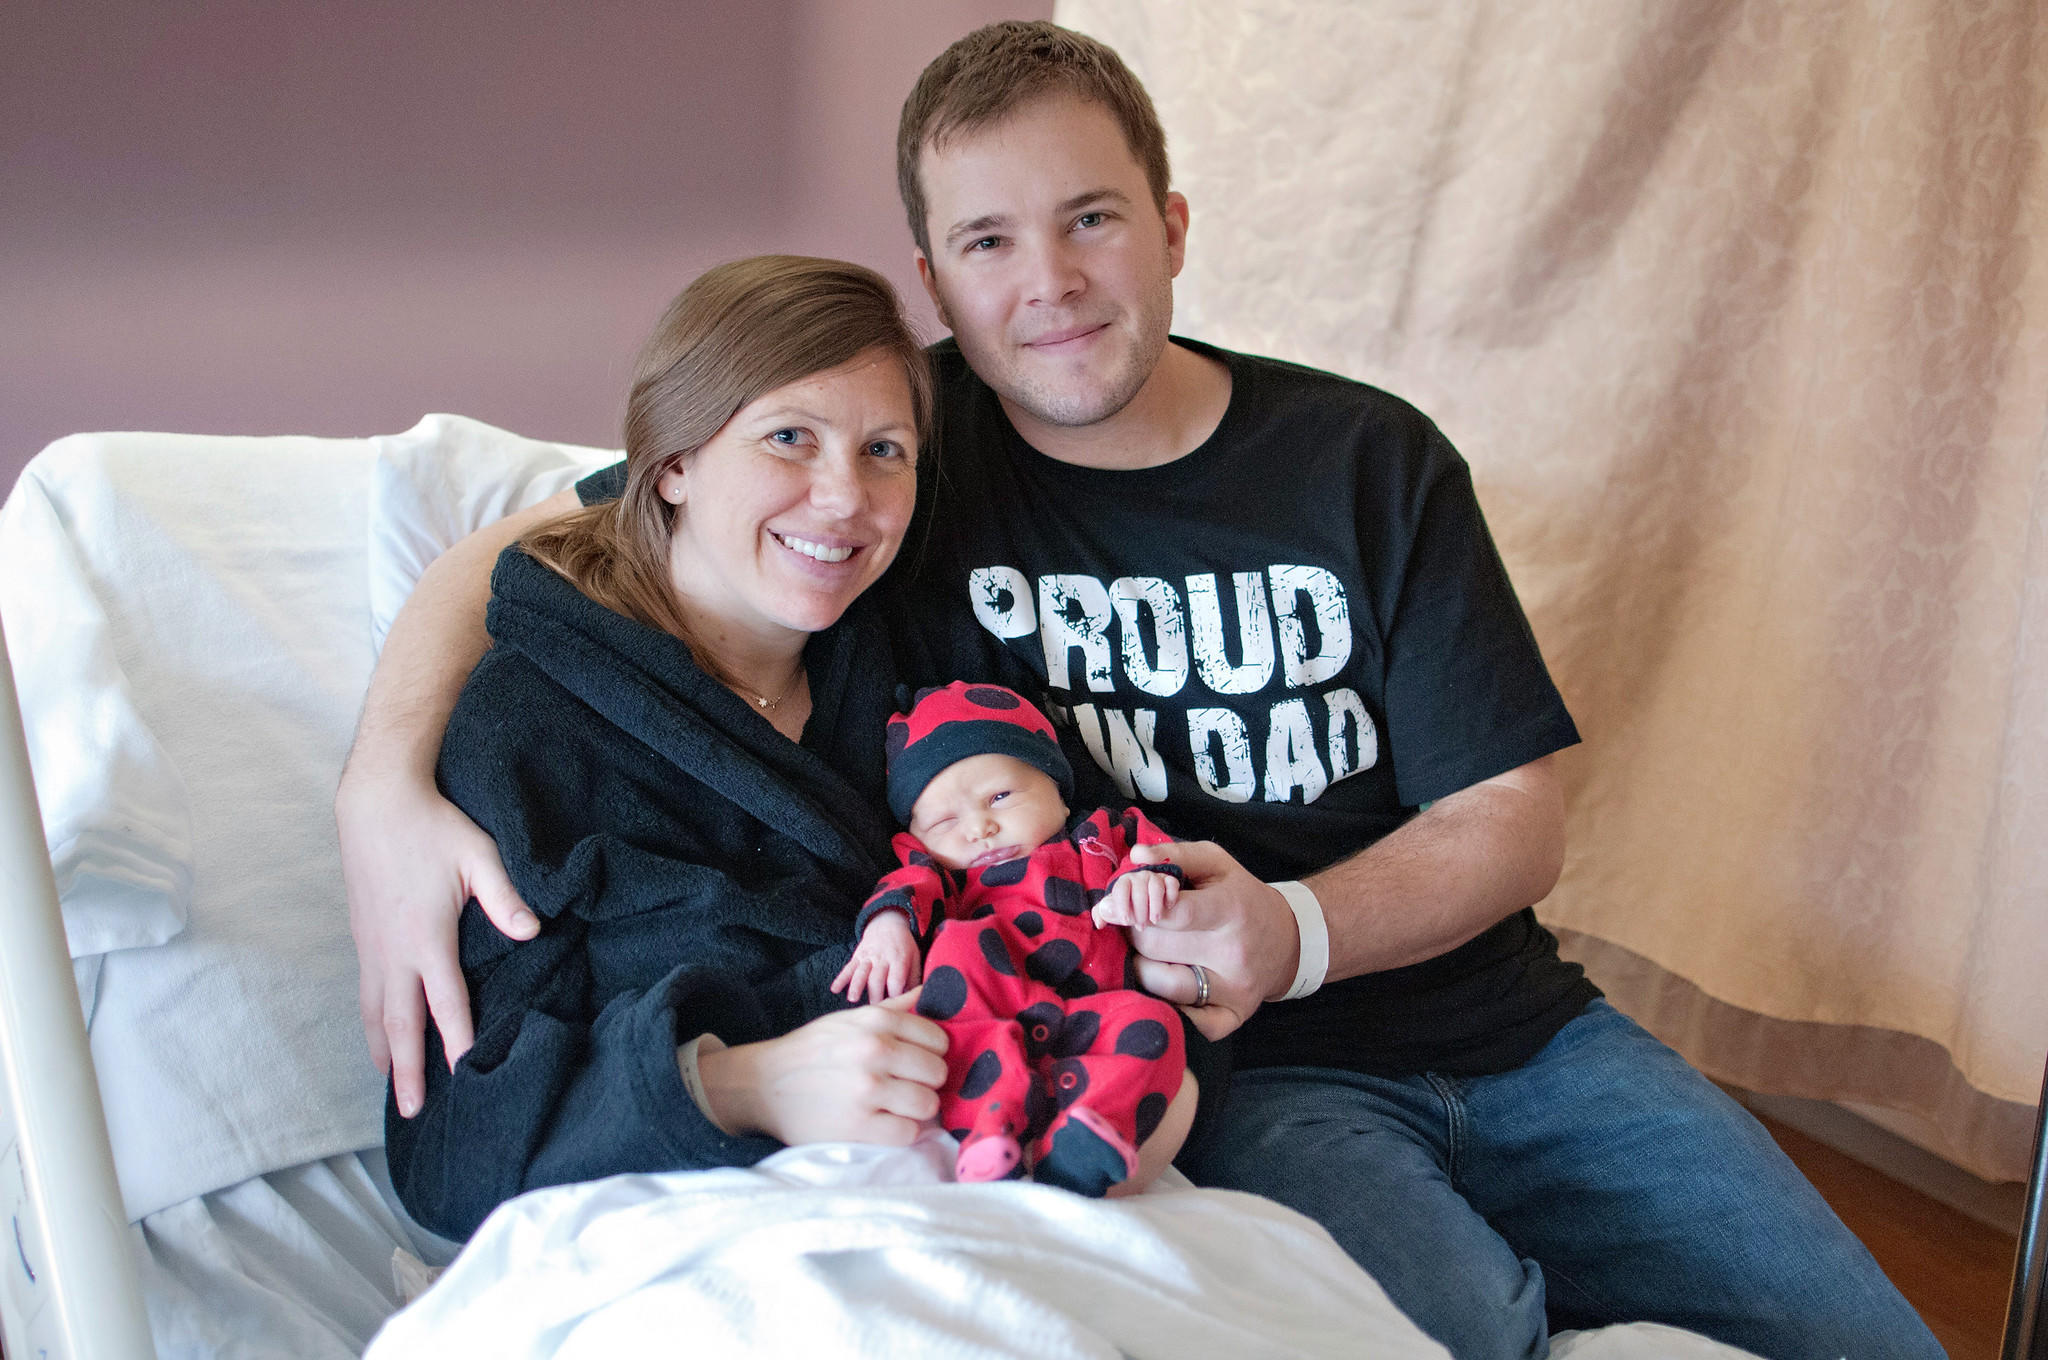 Lydia Strube Ammann was born at 12:25 A.M. on Jan. 1 to parents Jason and Emily Ammann. She is the couple's first child and the first baby born in Howard County in 2014.